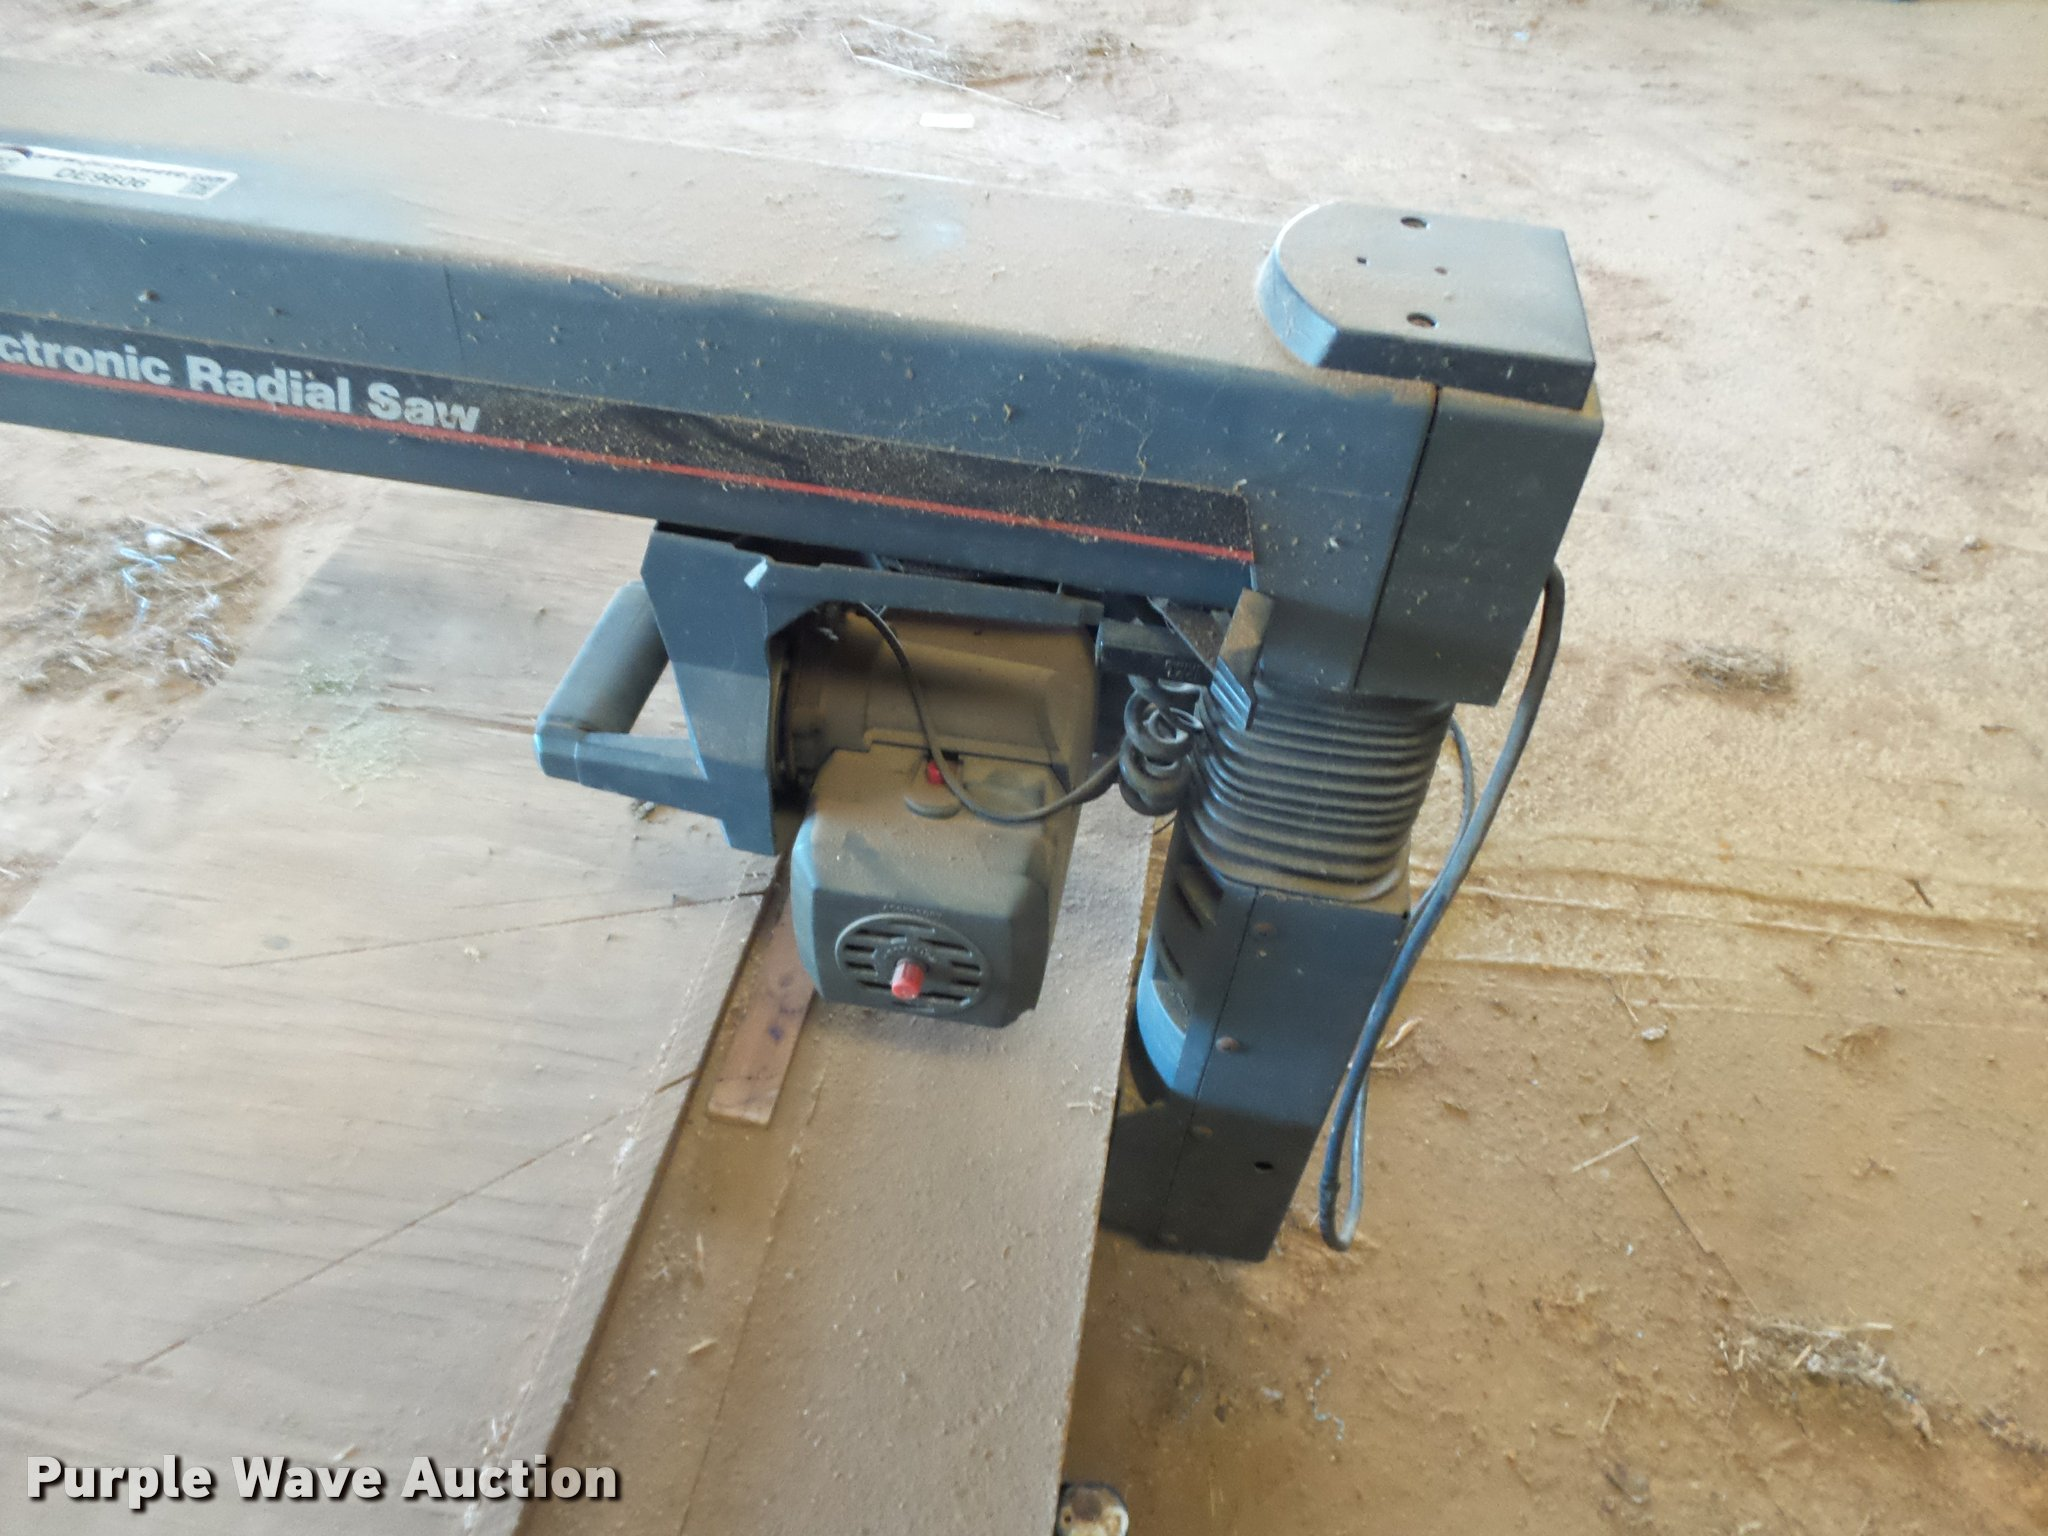 Electronic Radial Saw 275 Hp